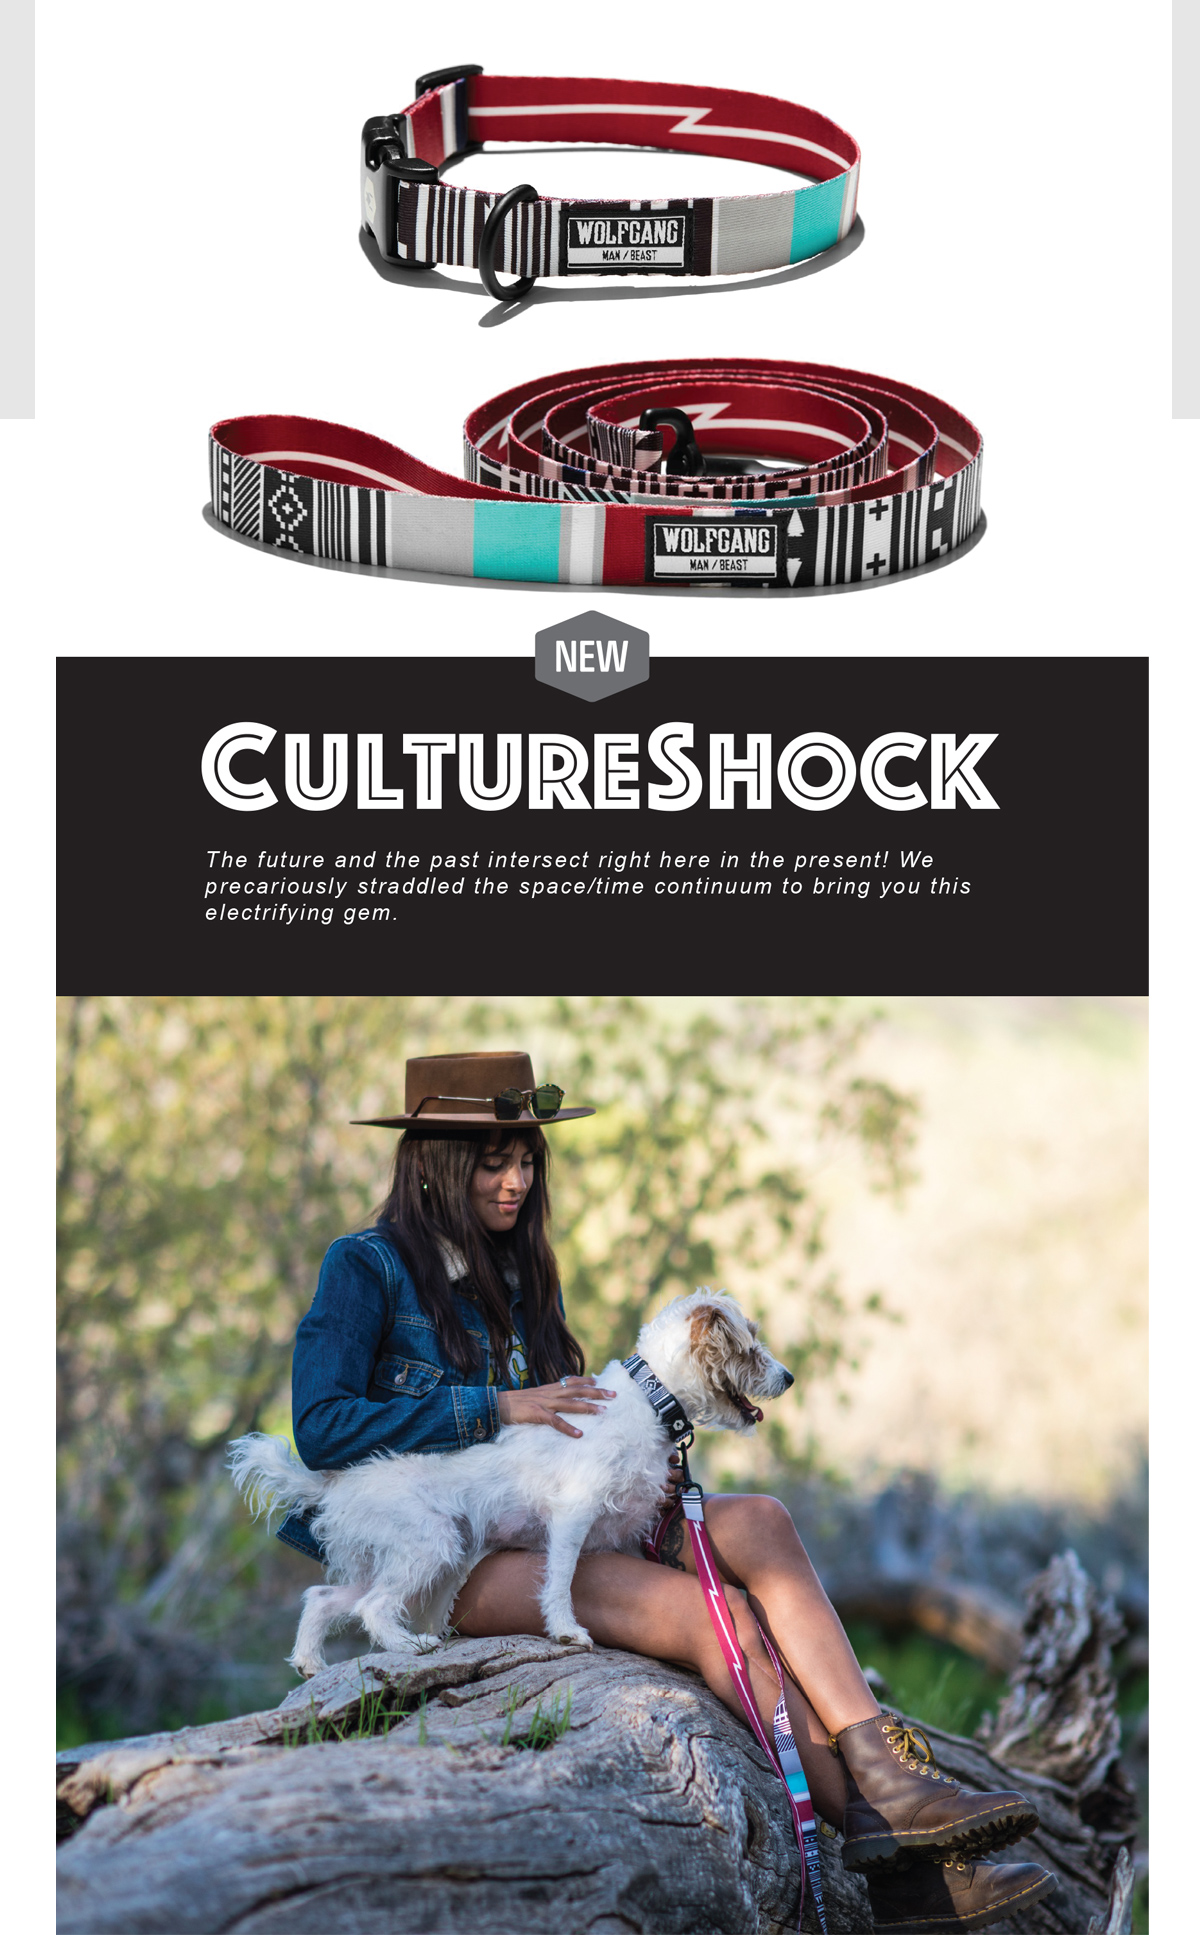 culture shock is here